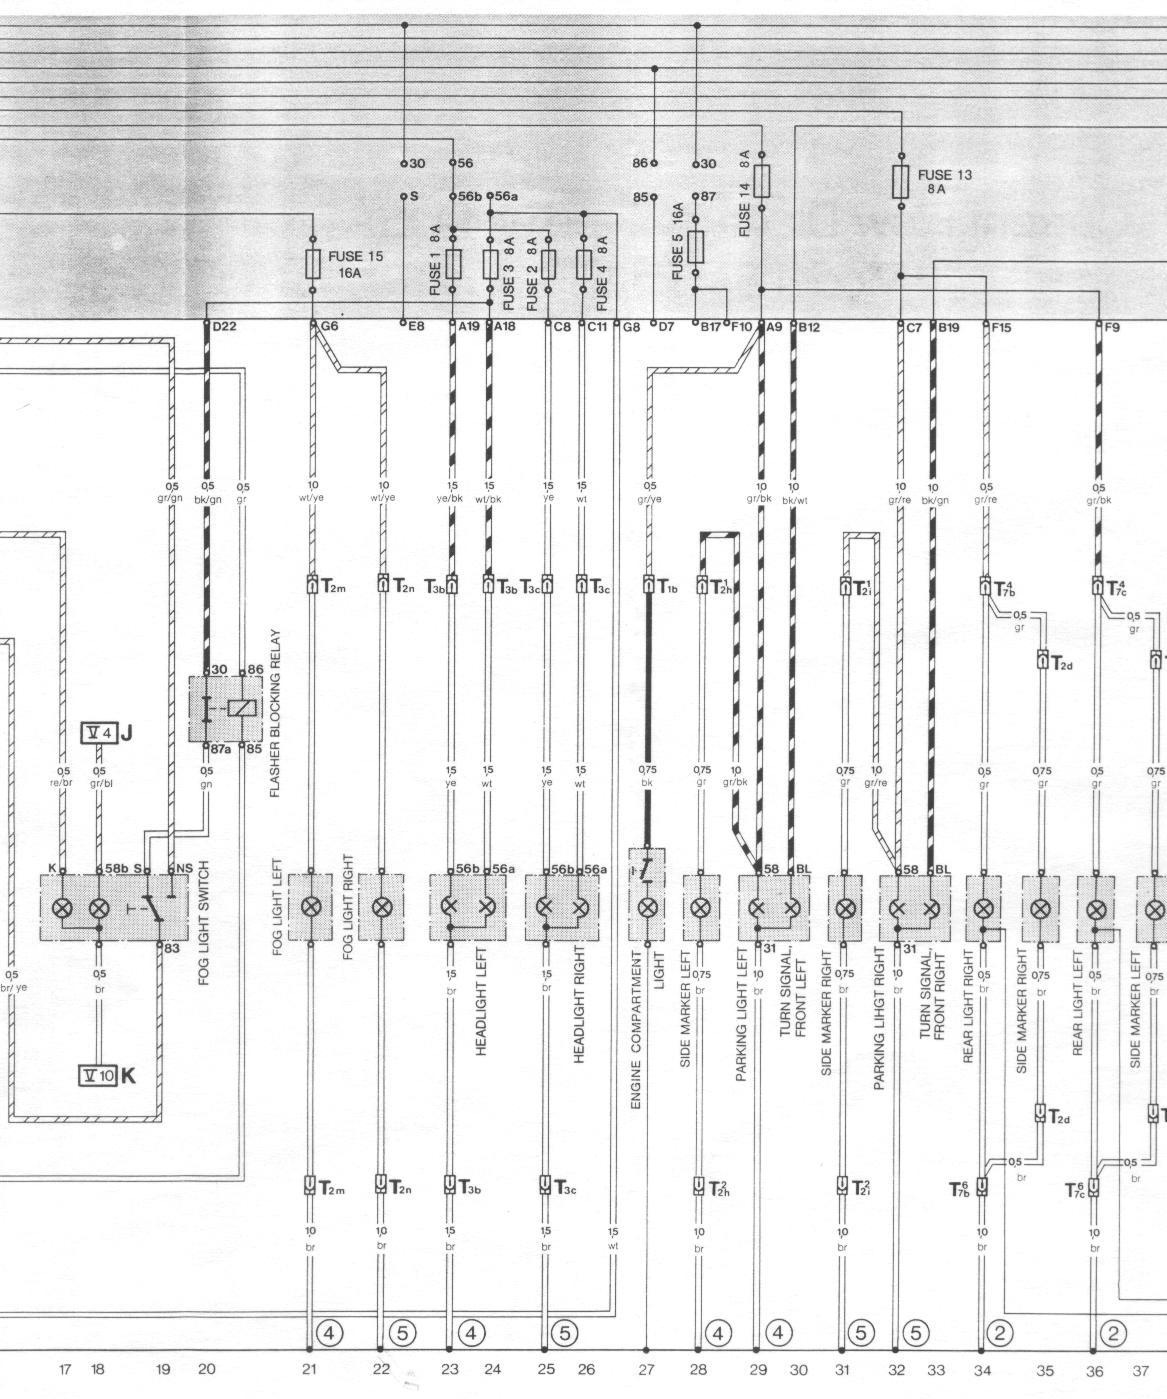 Coil Wiring Diagram For A 88 944 Sample 1983 Mustang Gt Pelican Parts Porsche 924 Electrical Diagrams